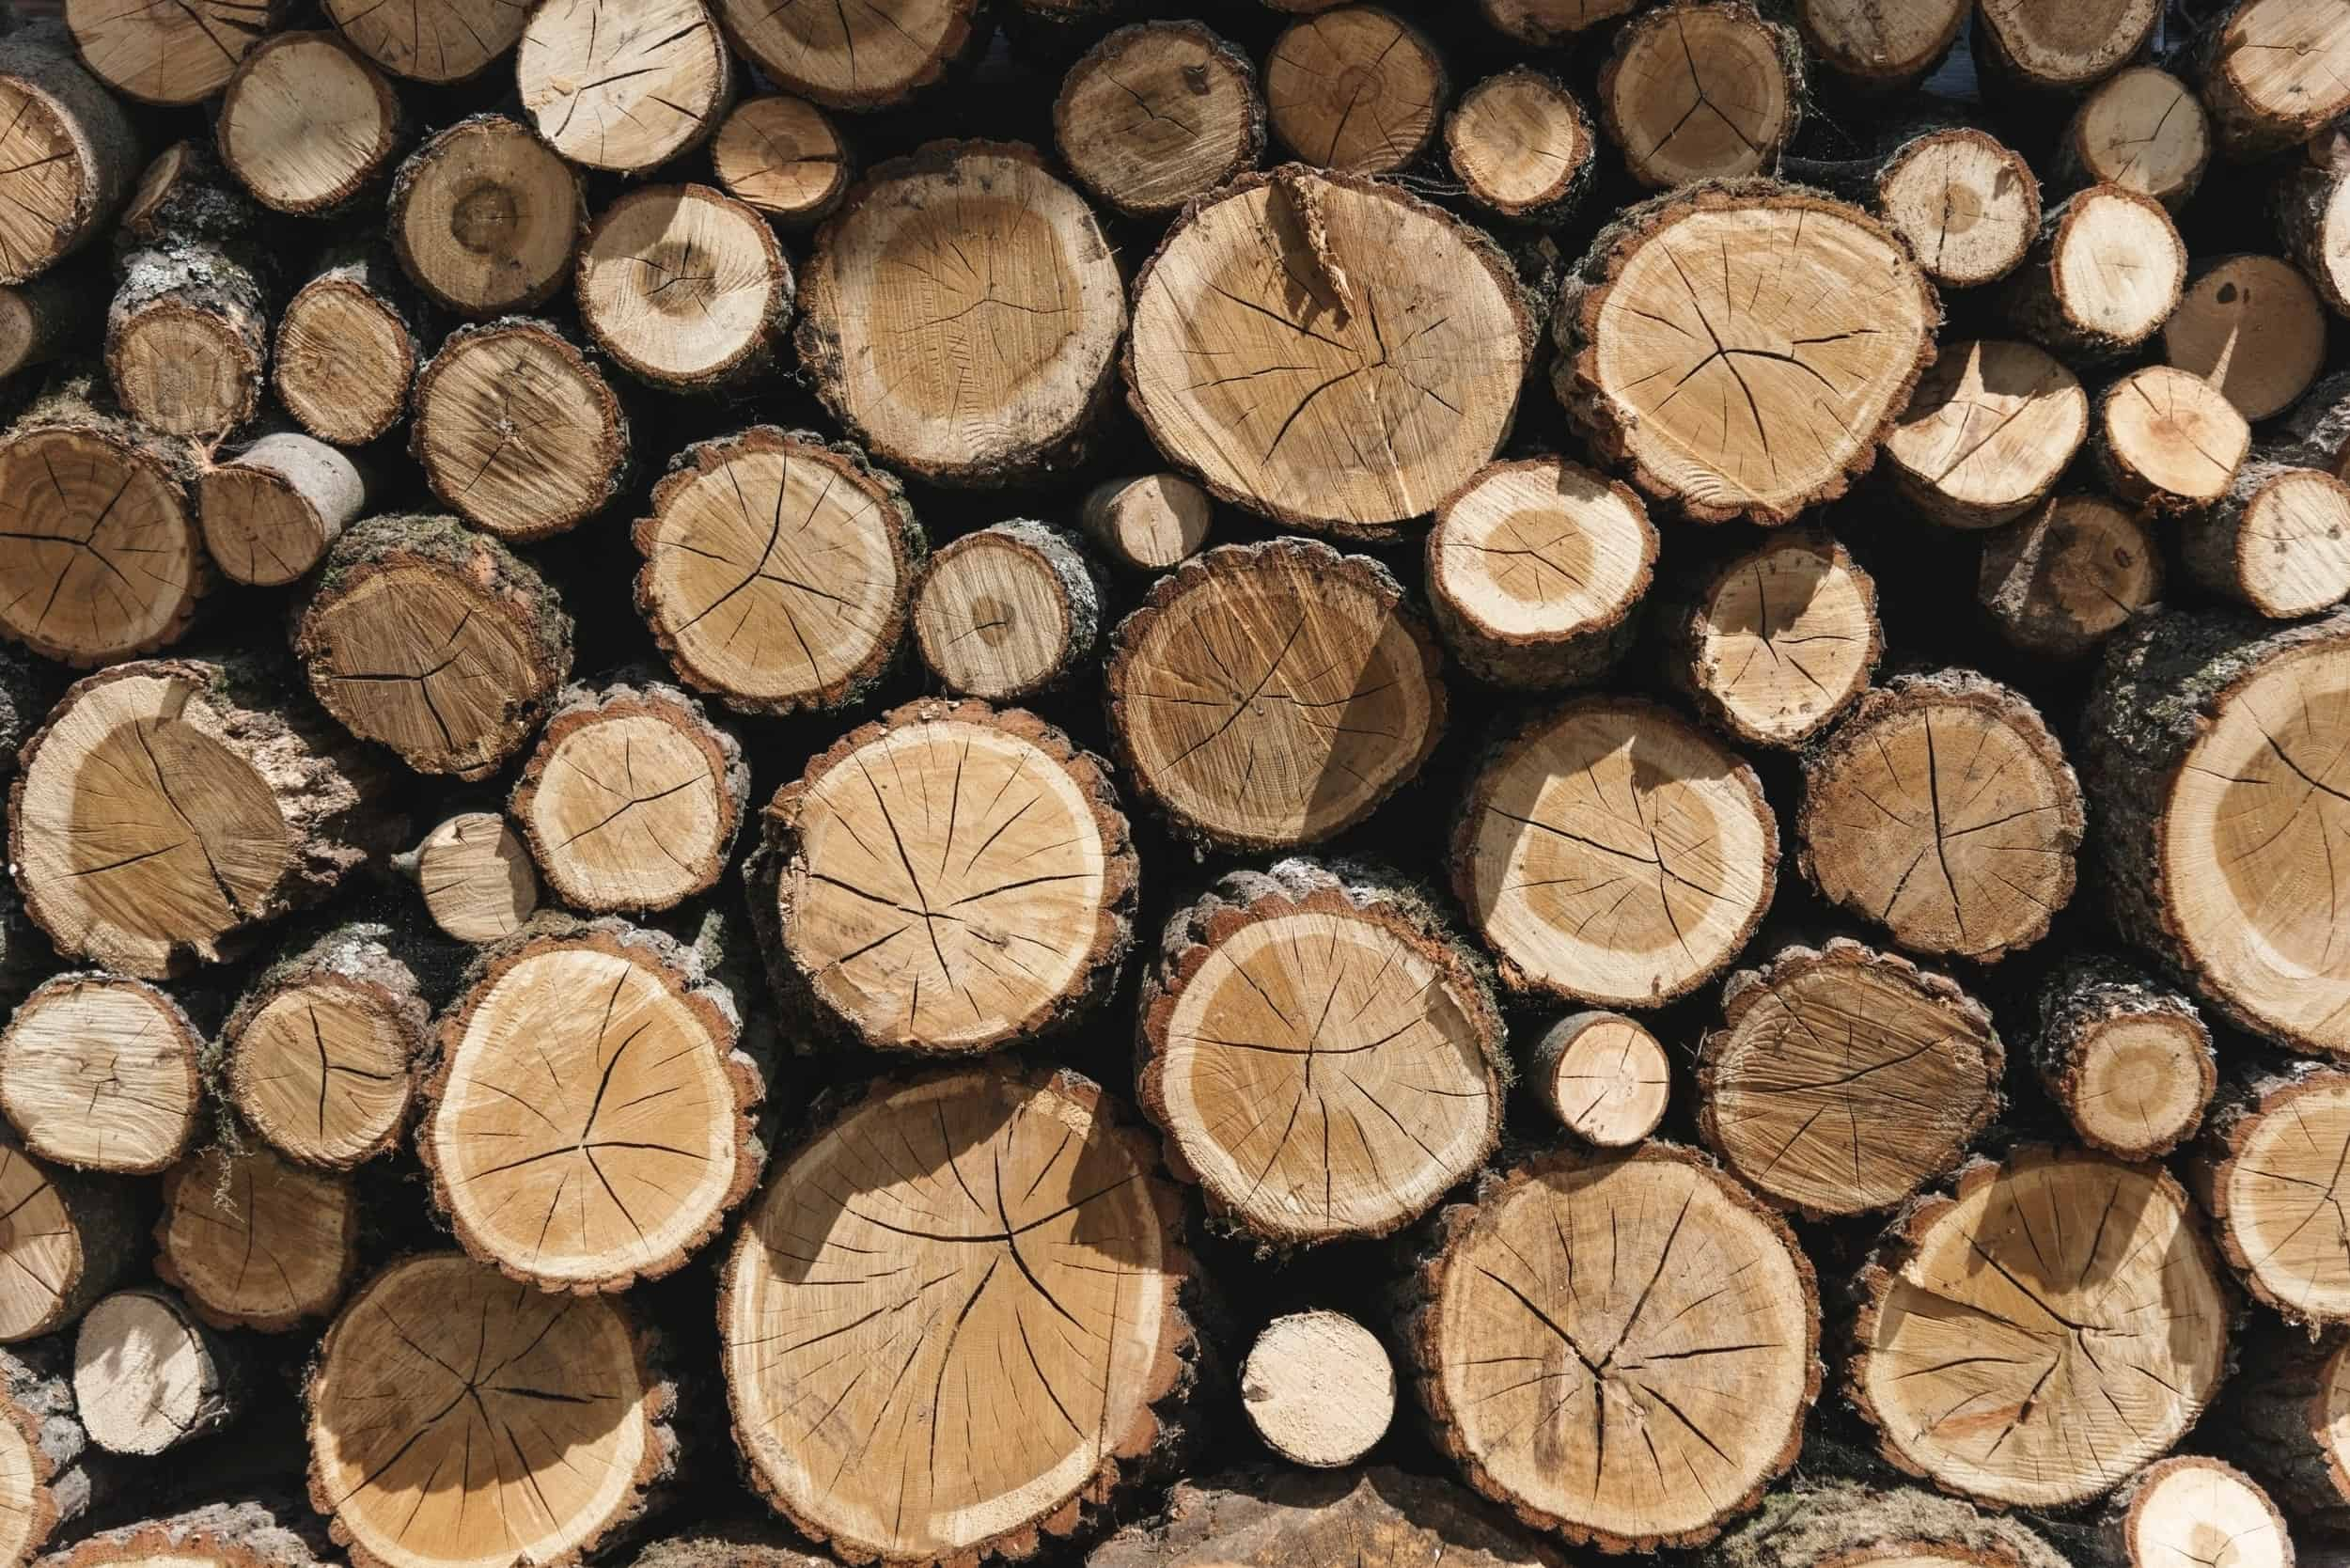 Types of Lumber Wood & Their Uses